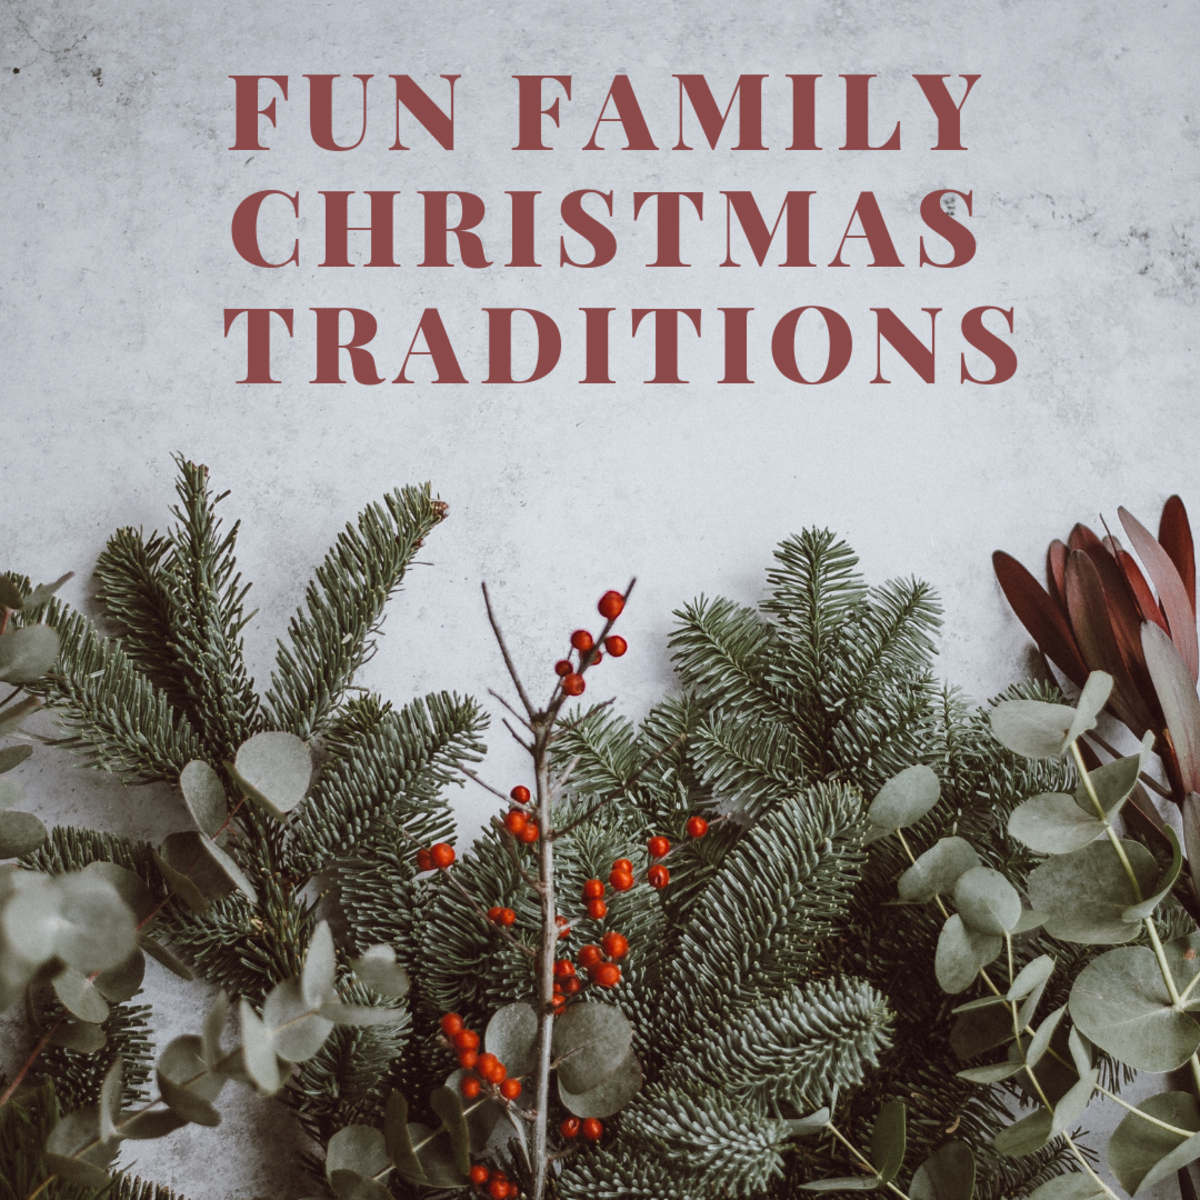 These traditions are fun for the whole family.